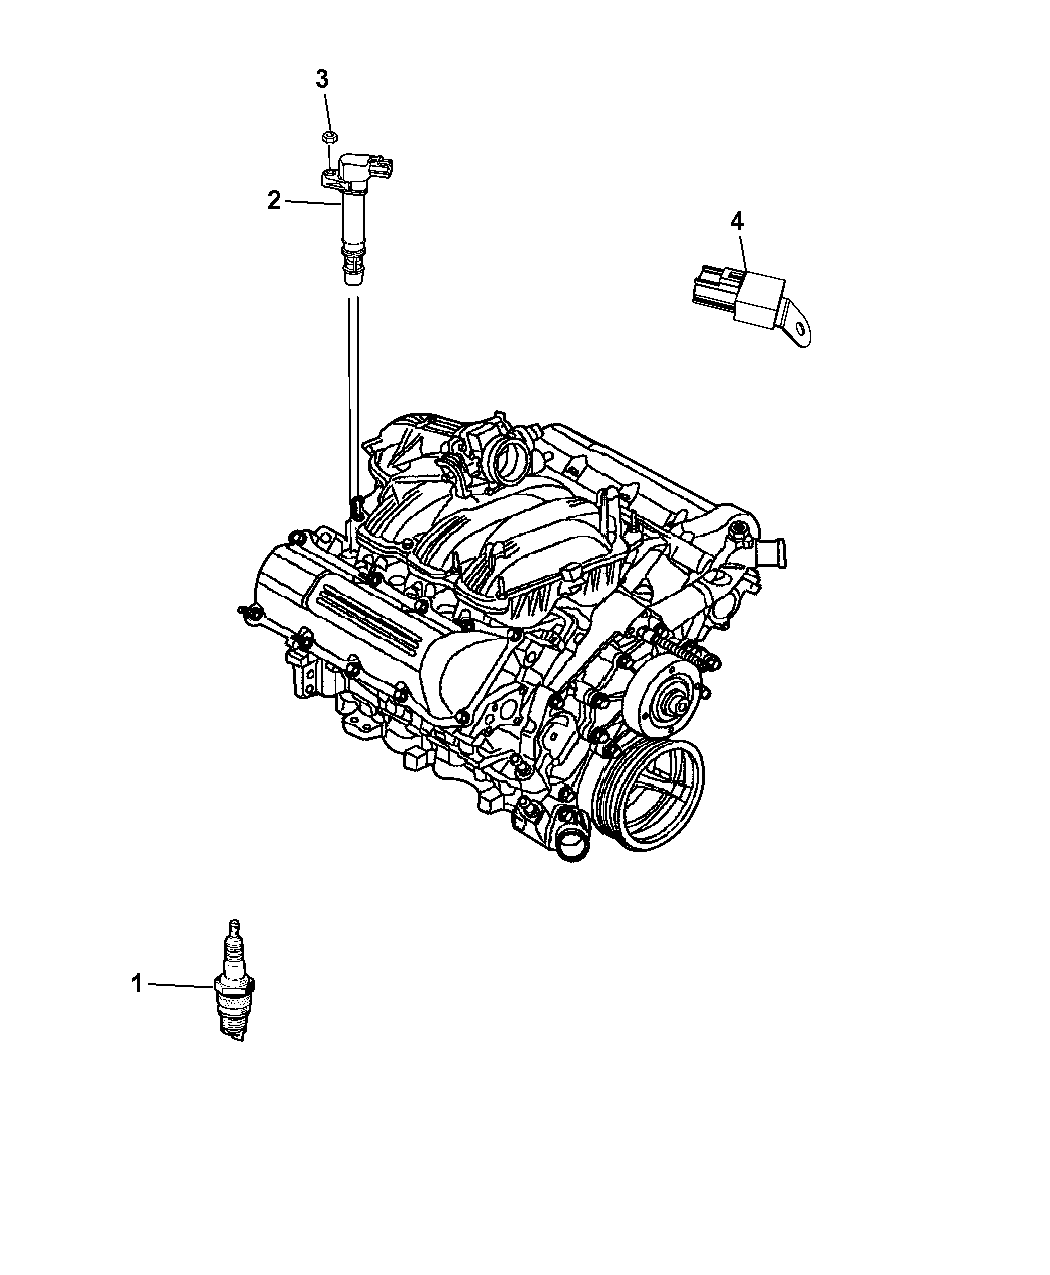 2014 Chrysler Town & Country Spark Plugs, Ignition Coil